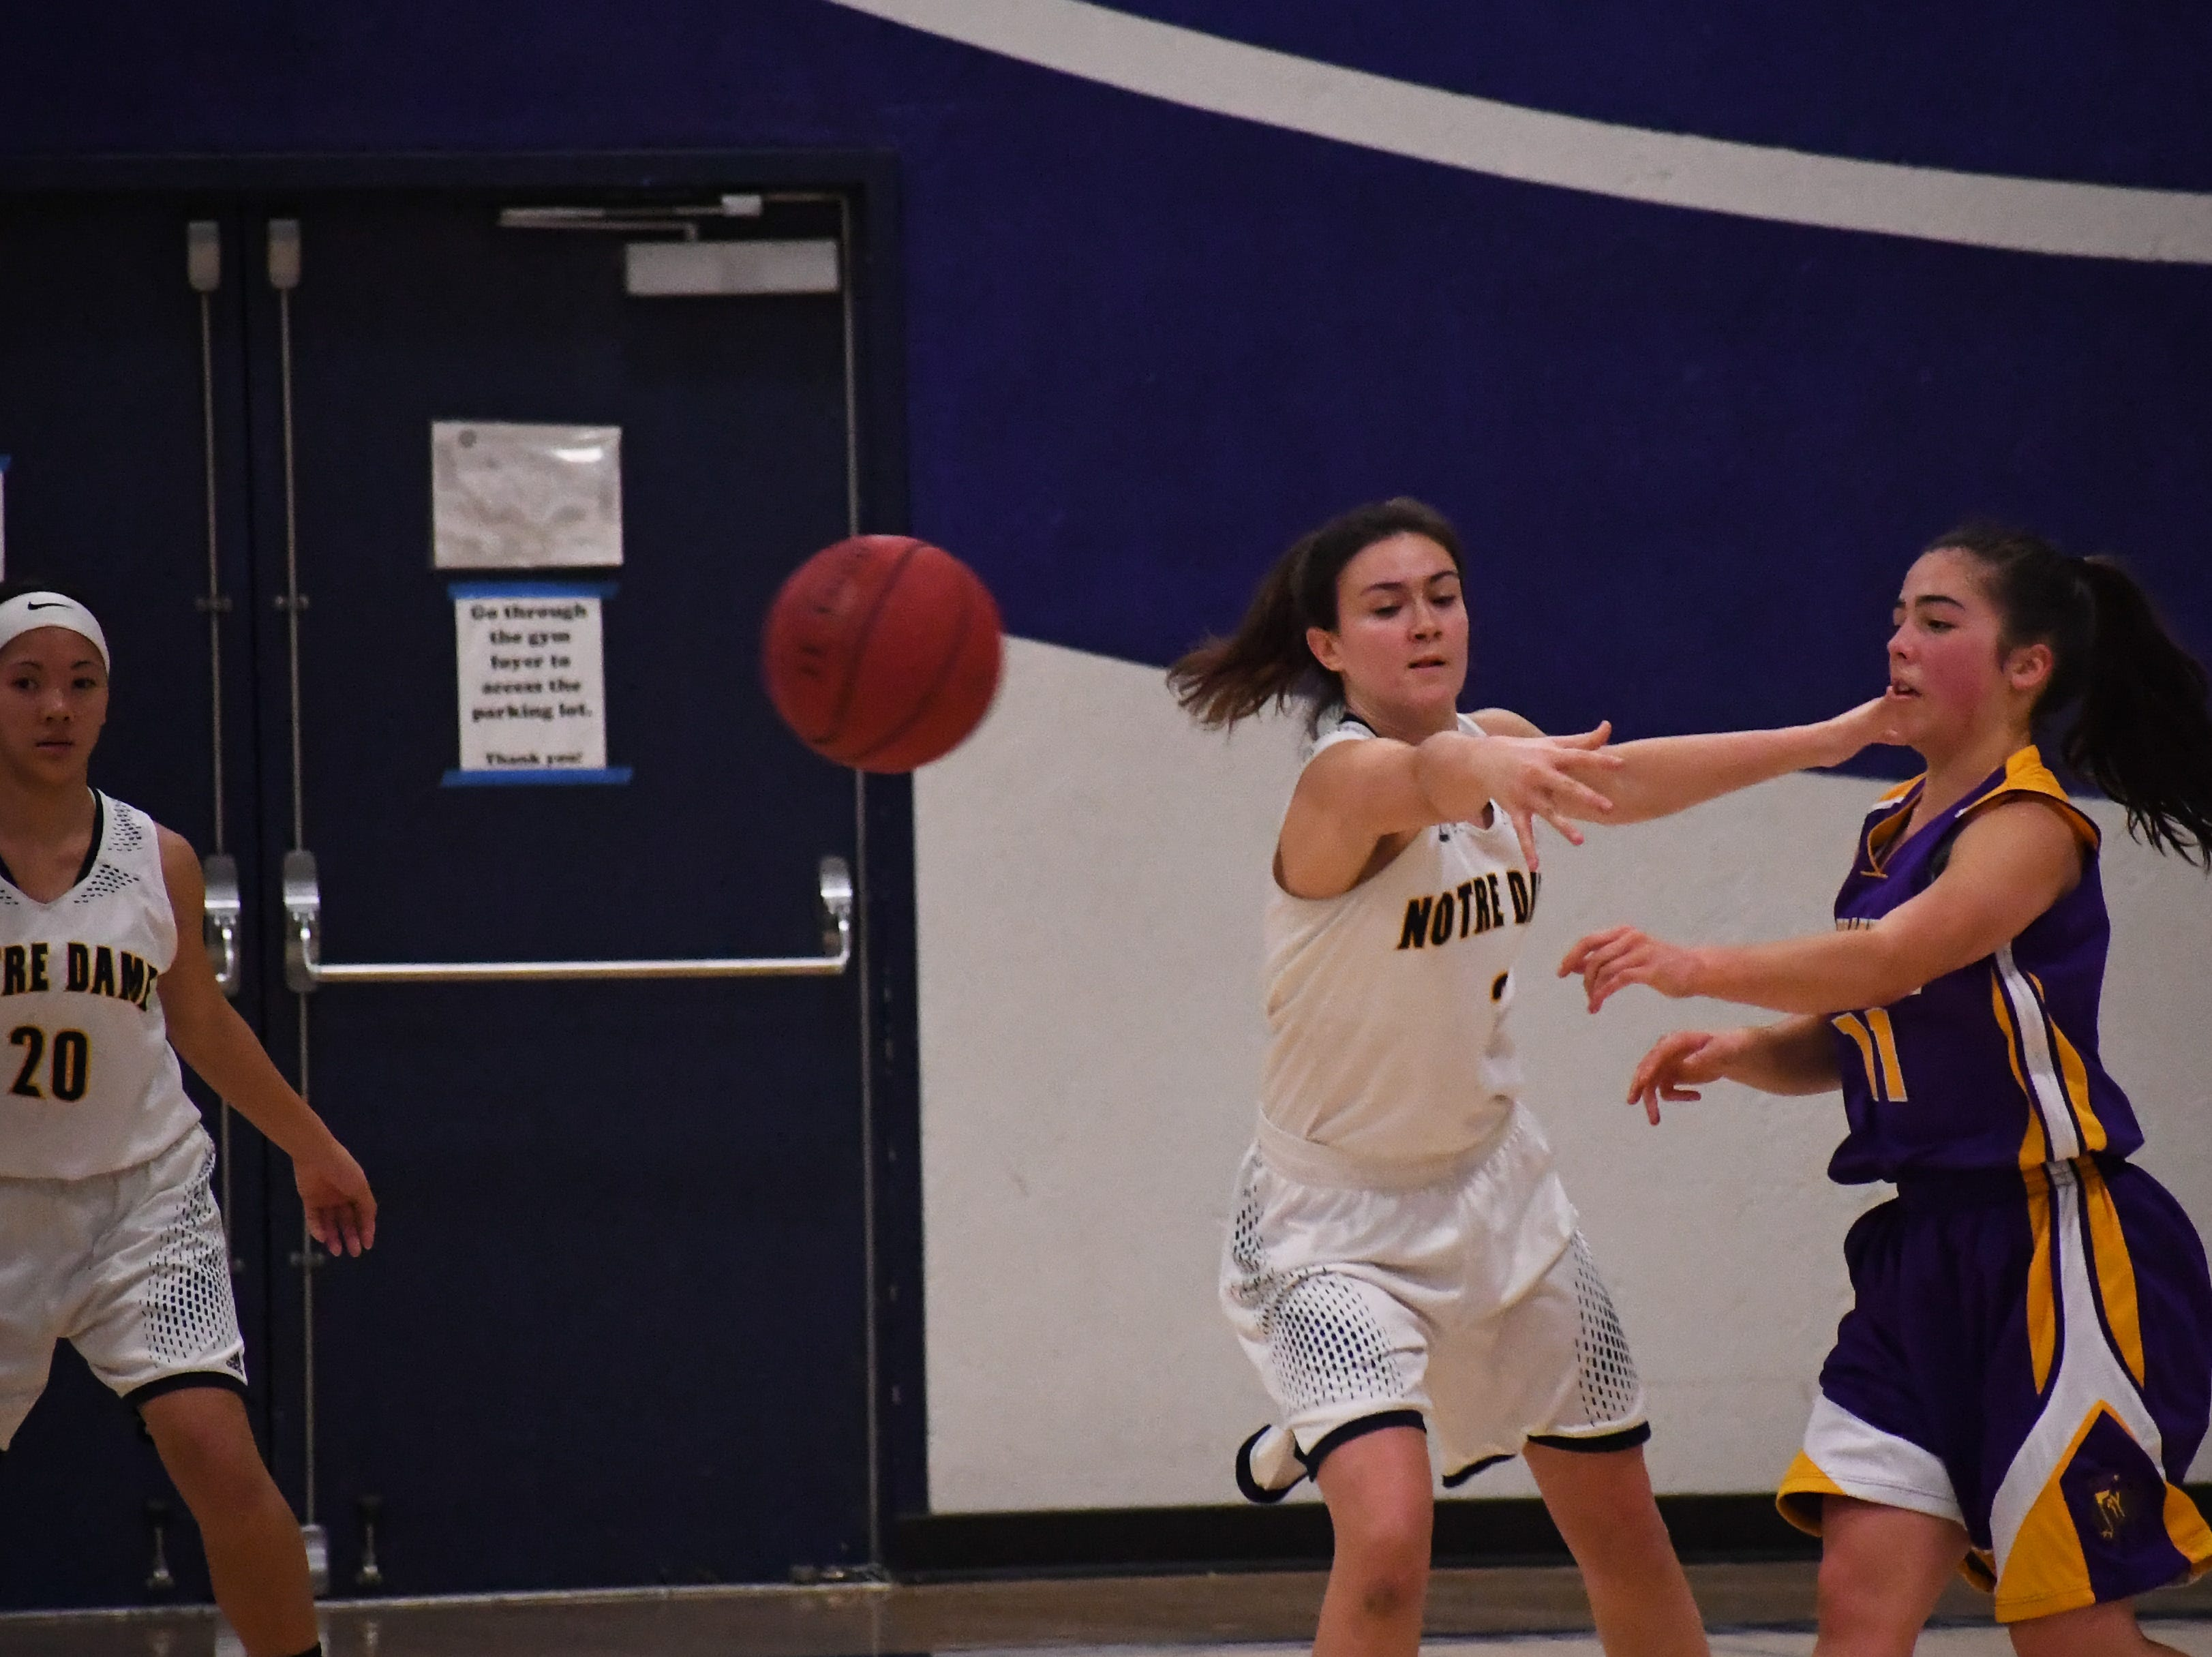 Salinas guard Brooke Cannon (11) fires a pass past the hand of Notre Dame's Kelly Kinion (2).